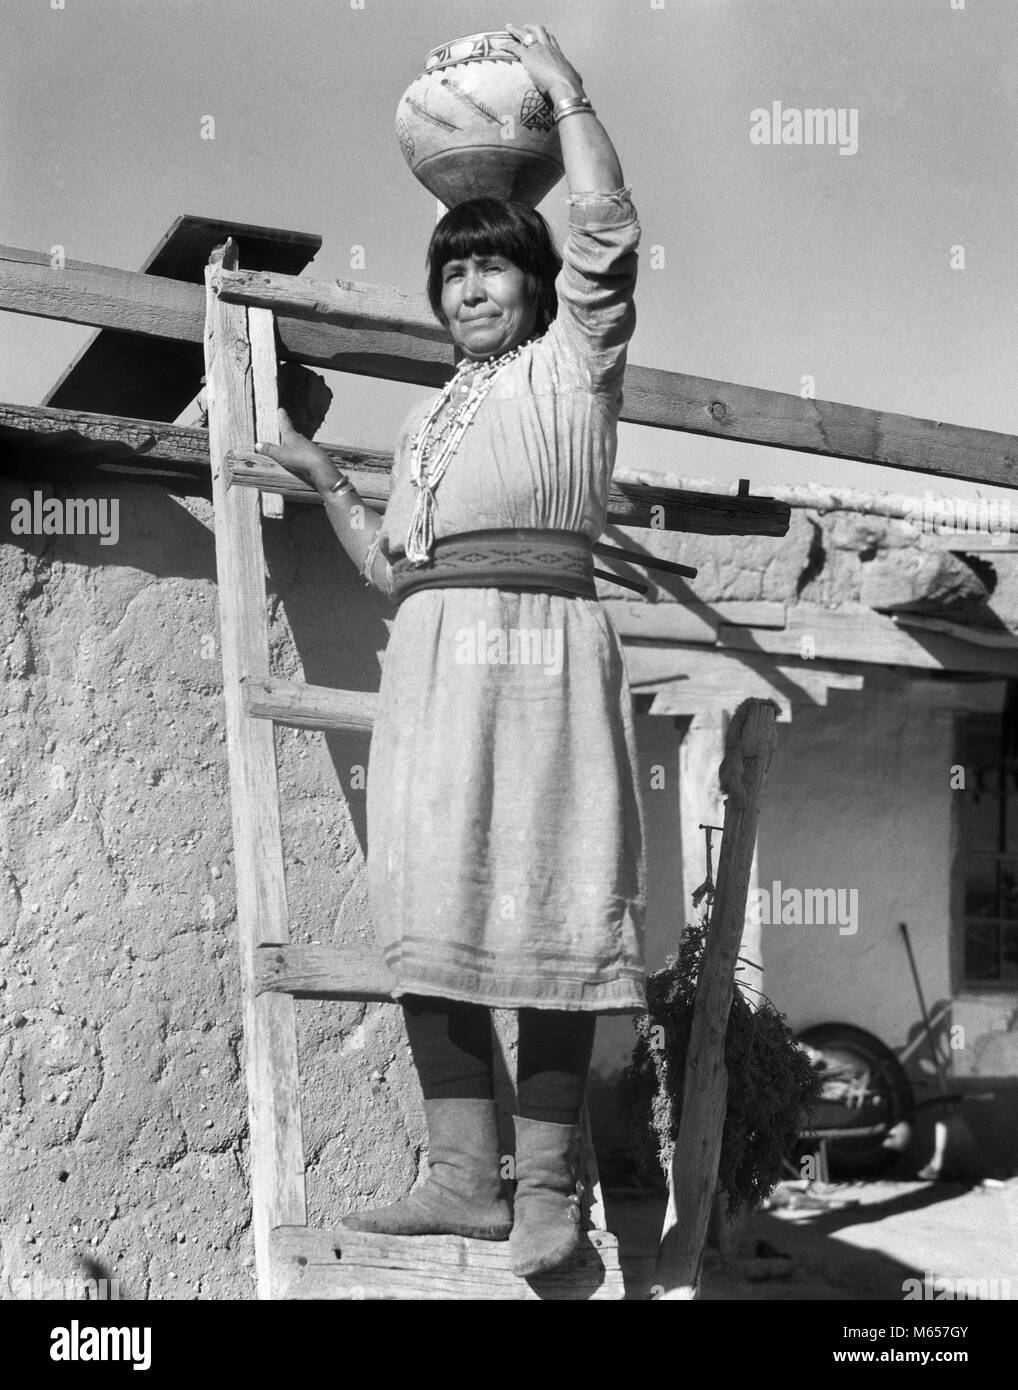 1930s NATIVE AMERICAN INDIAN WOMAN ON LADDER HOLDING OLLA POTTERY JAR ON HER HEAD COCHITI PUEBLO NEW MEXICO USA - Stock Image